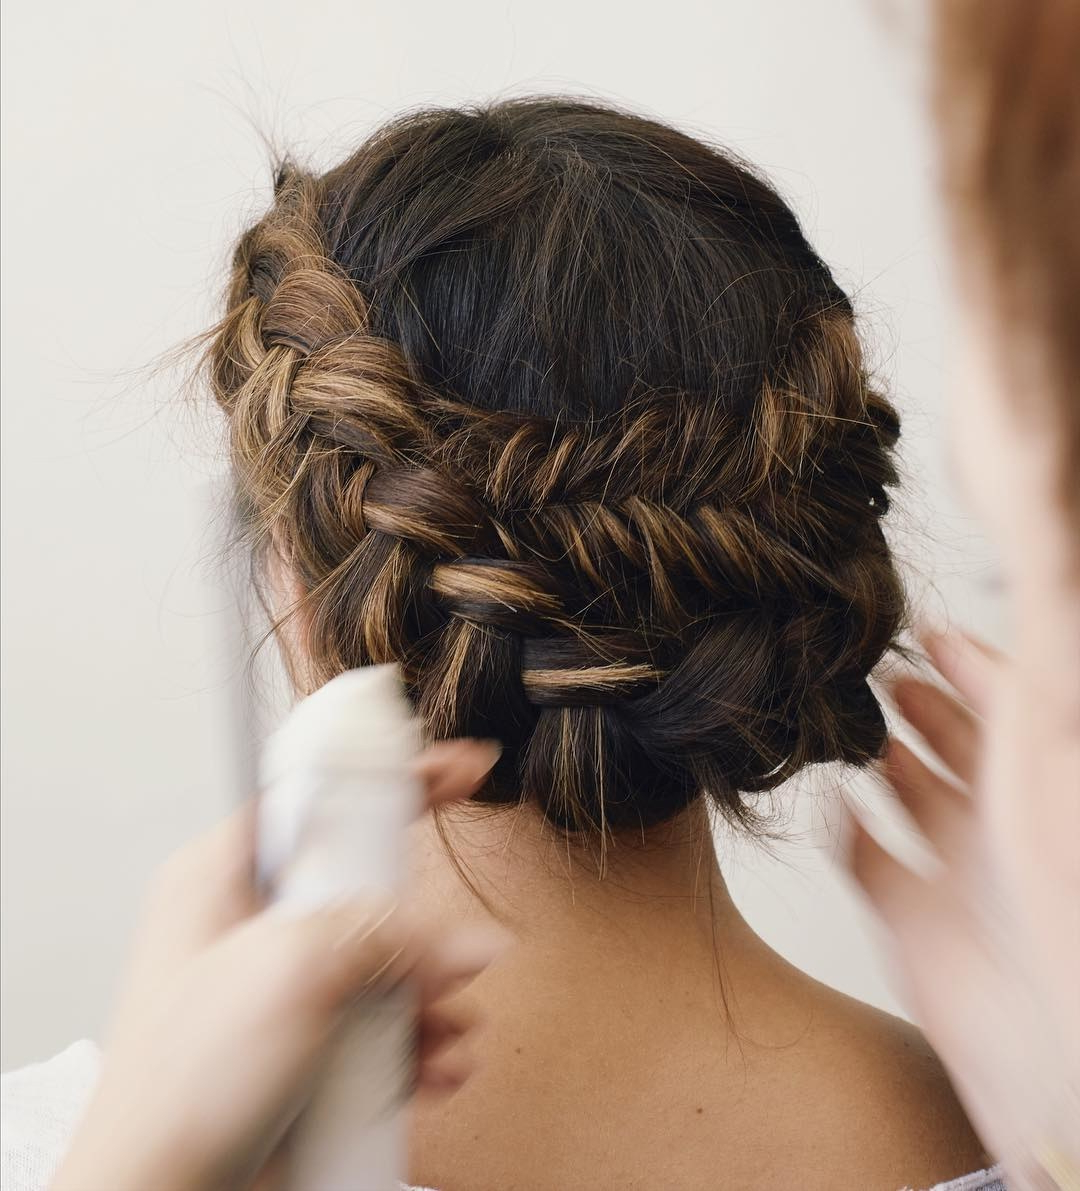 Brides Throughout Current Double Braid Bridal Hairstyles With Fresh Flowers (View 3 of 20)